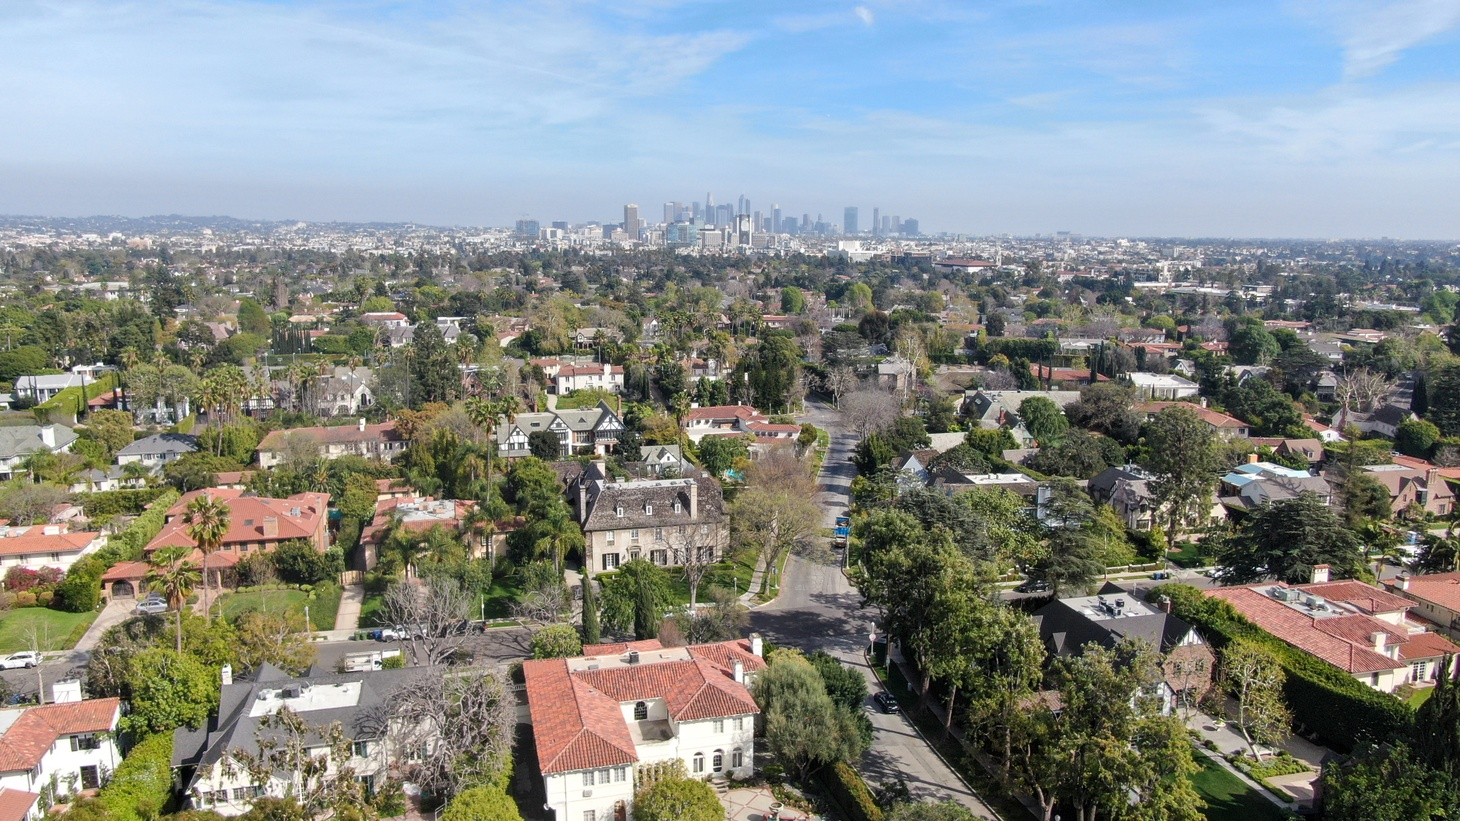 An aerial view of large homes in Central Los Angeles, California. USA.